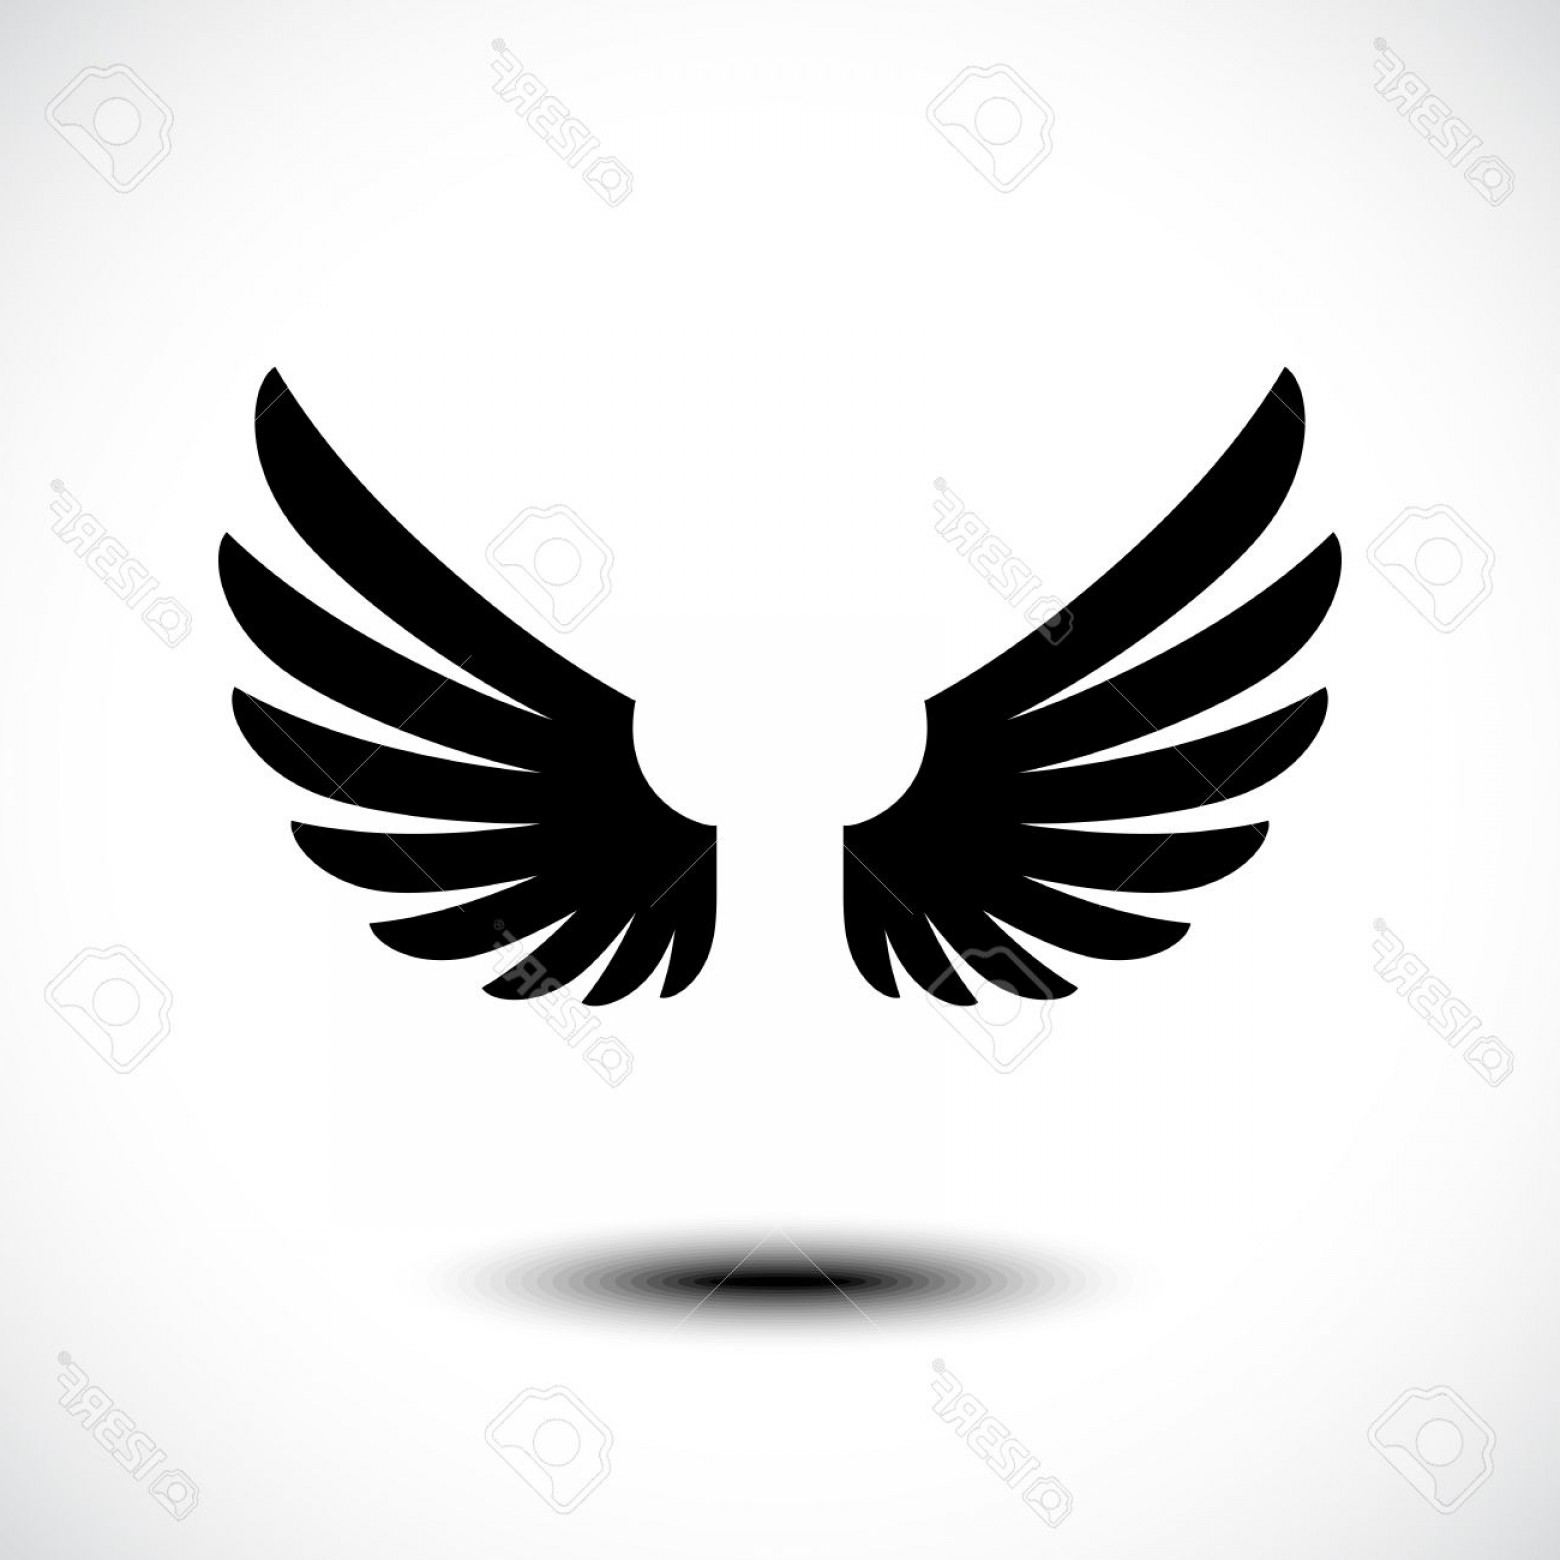 1560x1560 Fanciful Photostock Vector Angel Wings Vector Illustration Lazttweet